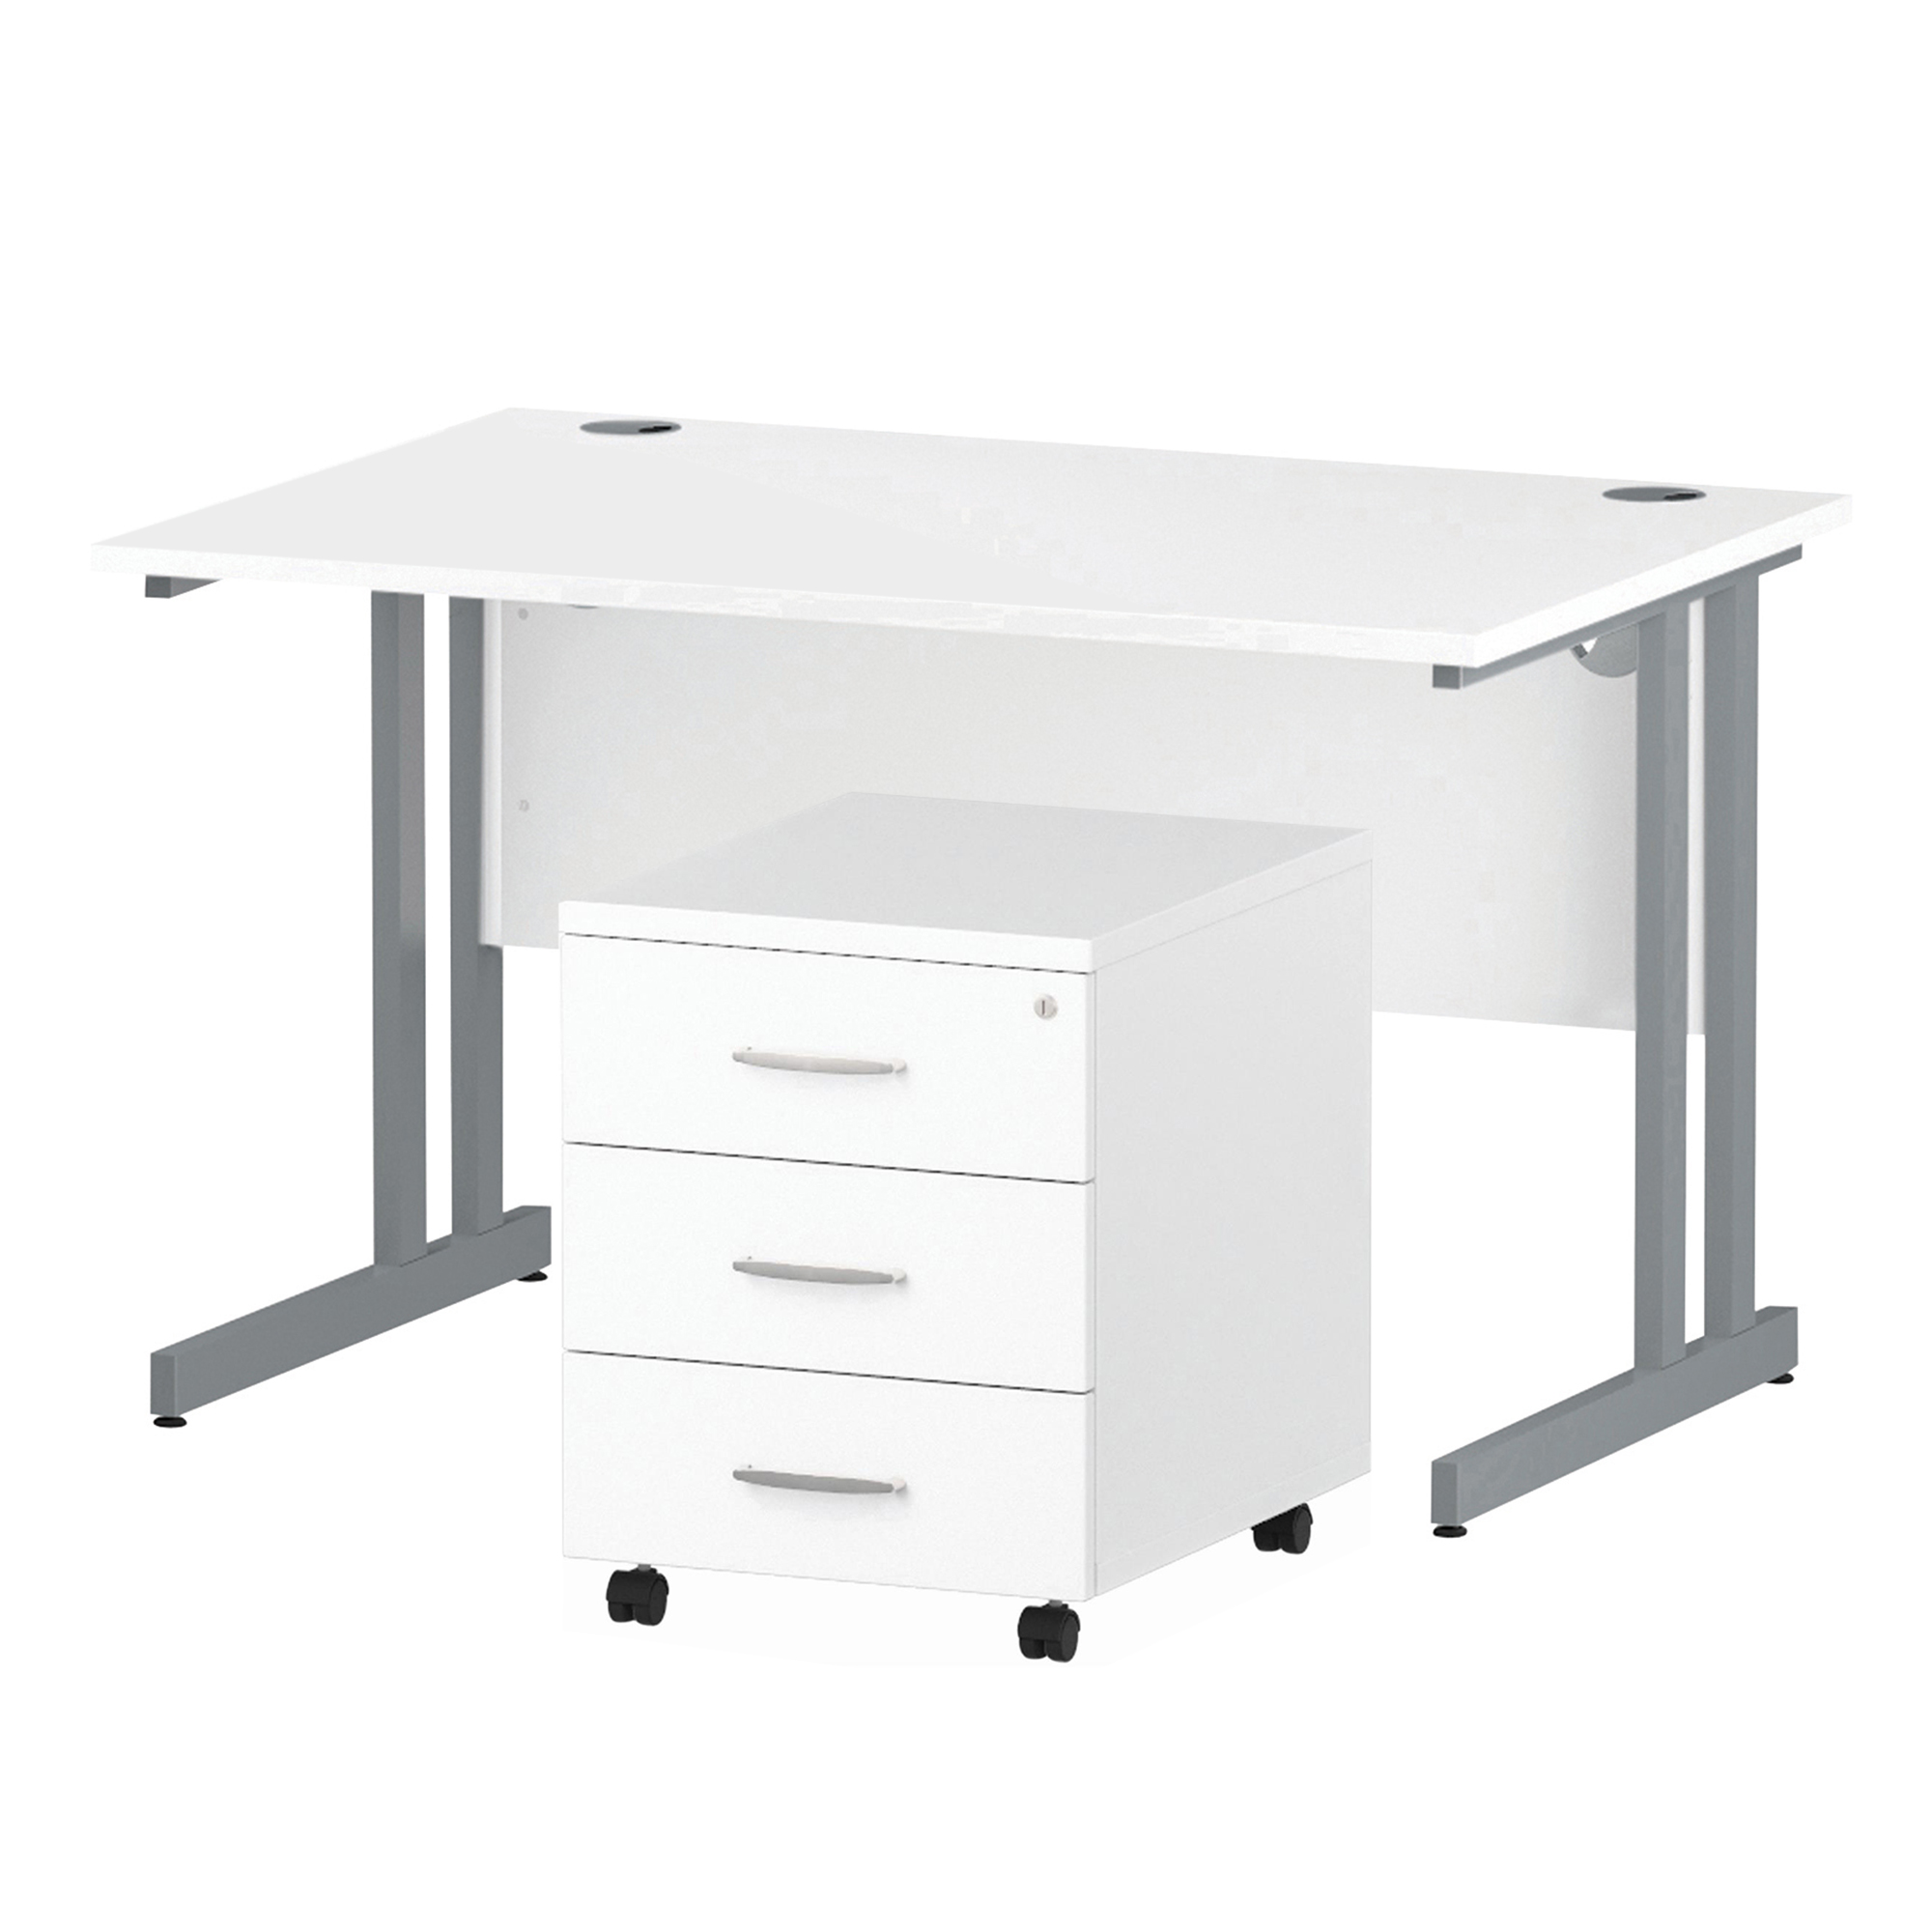 Desks Trexus Cantilever Desk 1200x800 & 3 Drawer Pedestal White Bundle Offer Feb-Apr 2020